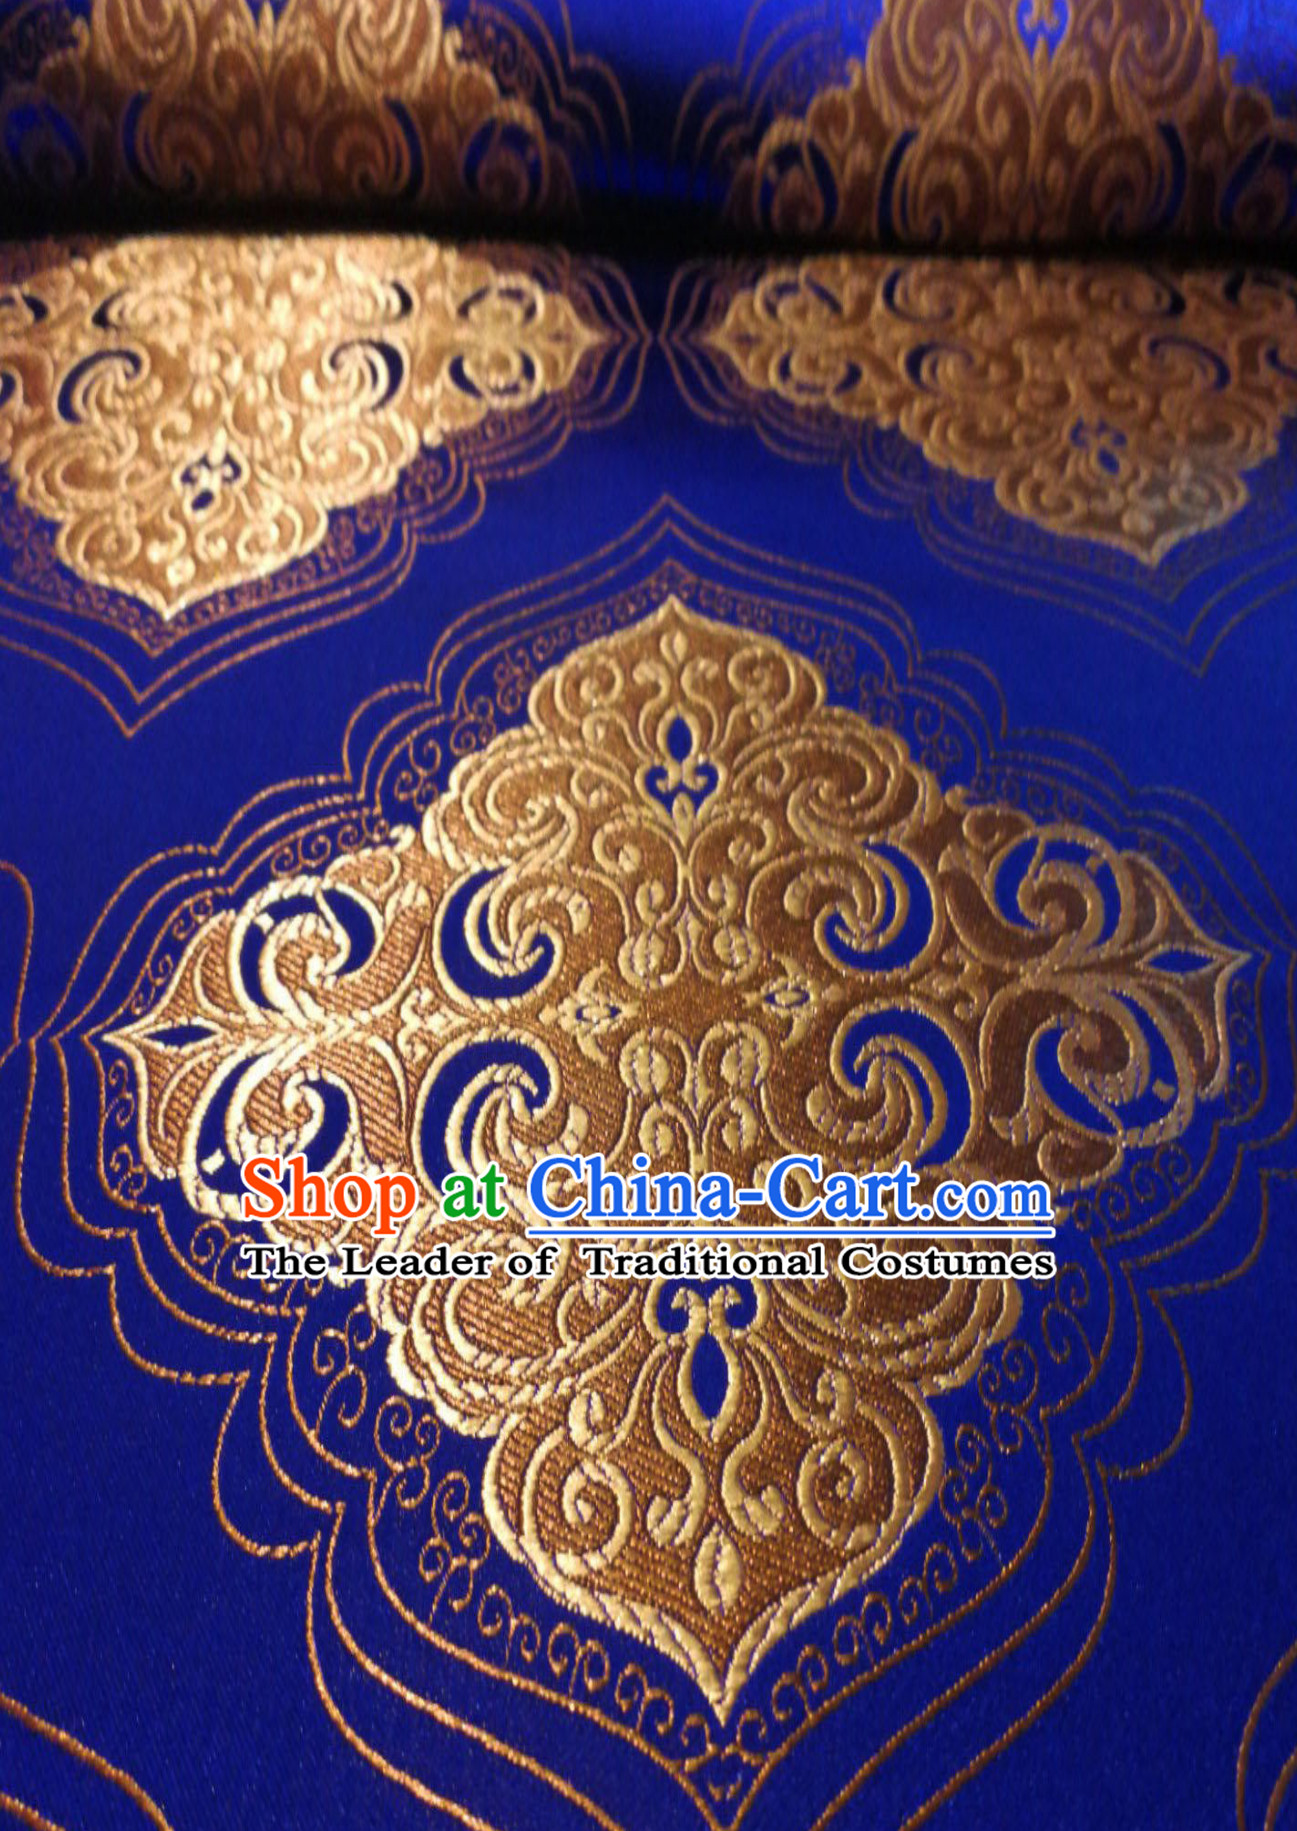 Royal Blue Color Chinese Royal Palace Style Traditional Pattern Design Brocade Fabric Silk Fabric Chinese Fabric Asian Material